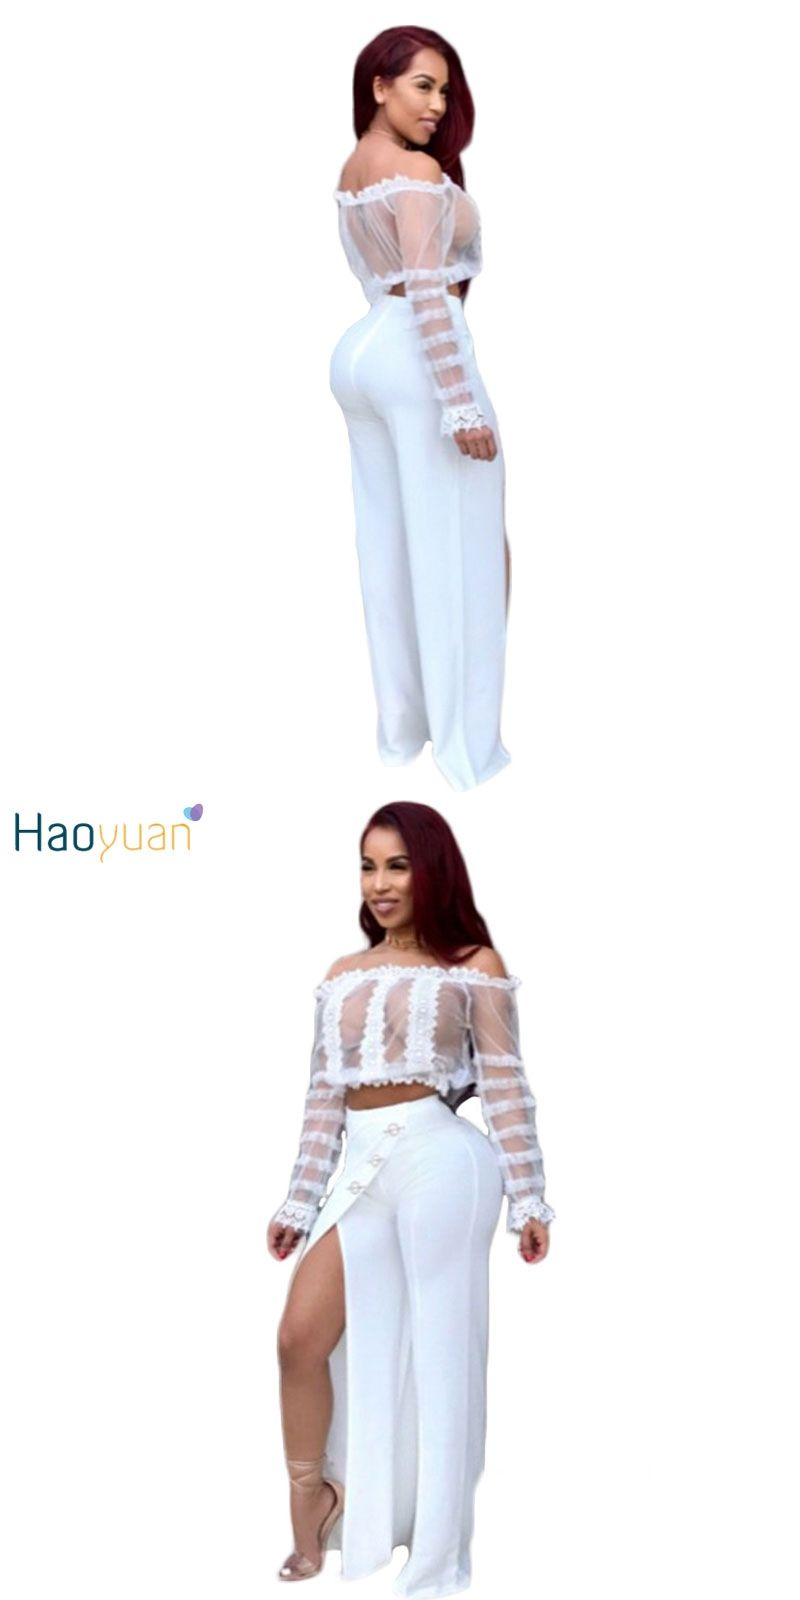 7dcb1c3a5646 HAOYUAN Sexy Two Piece Set Women 2018 See Through Mesh Lace Crop Tops And  Split Wide Leg Pants Suit White Costume Matching Sets